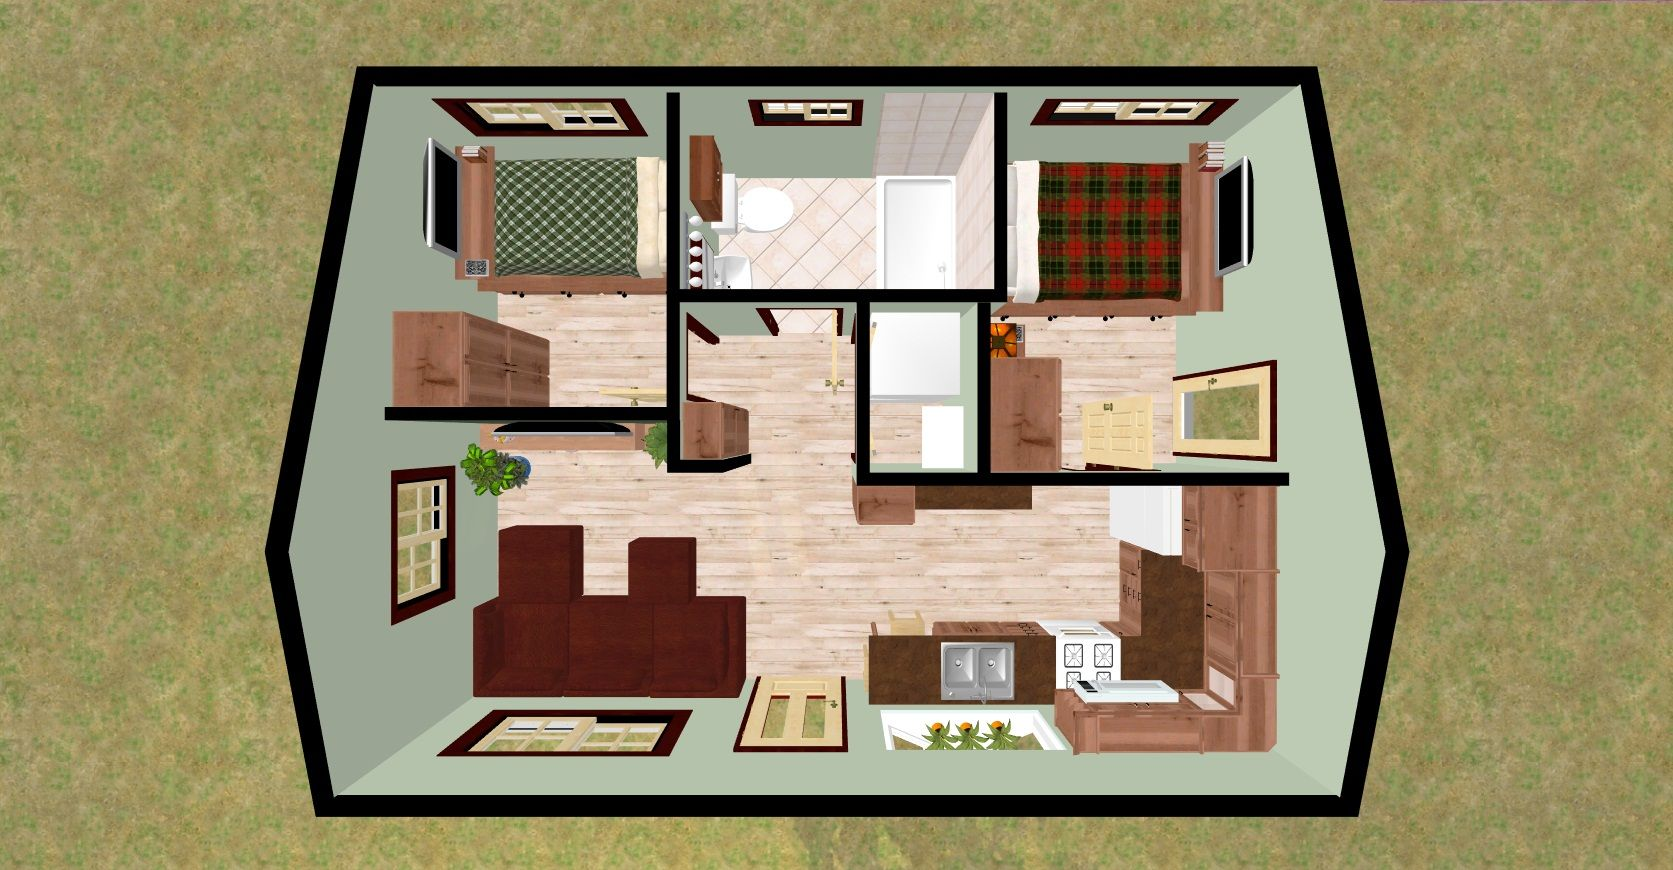 Small House Blueprints small floor plan change up stairs to one bedroom w bath and closet Cozyhomeplanscom 432 Sq Ft Small House Firefly 3d